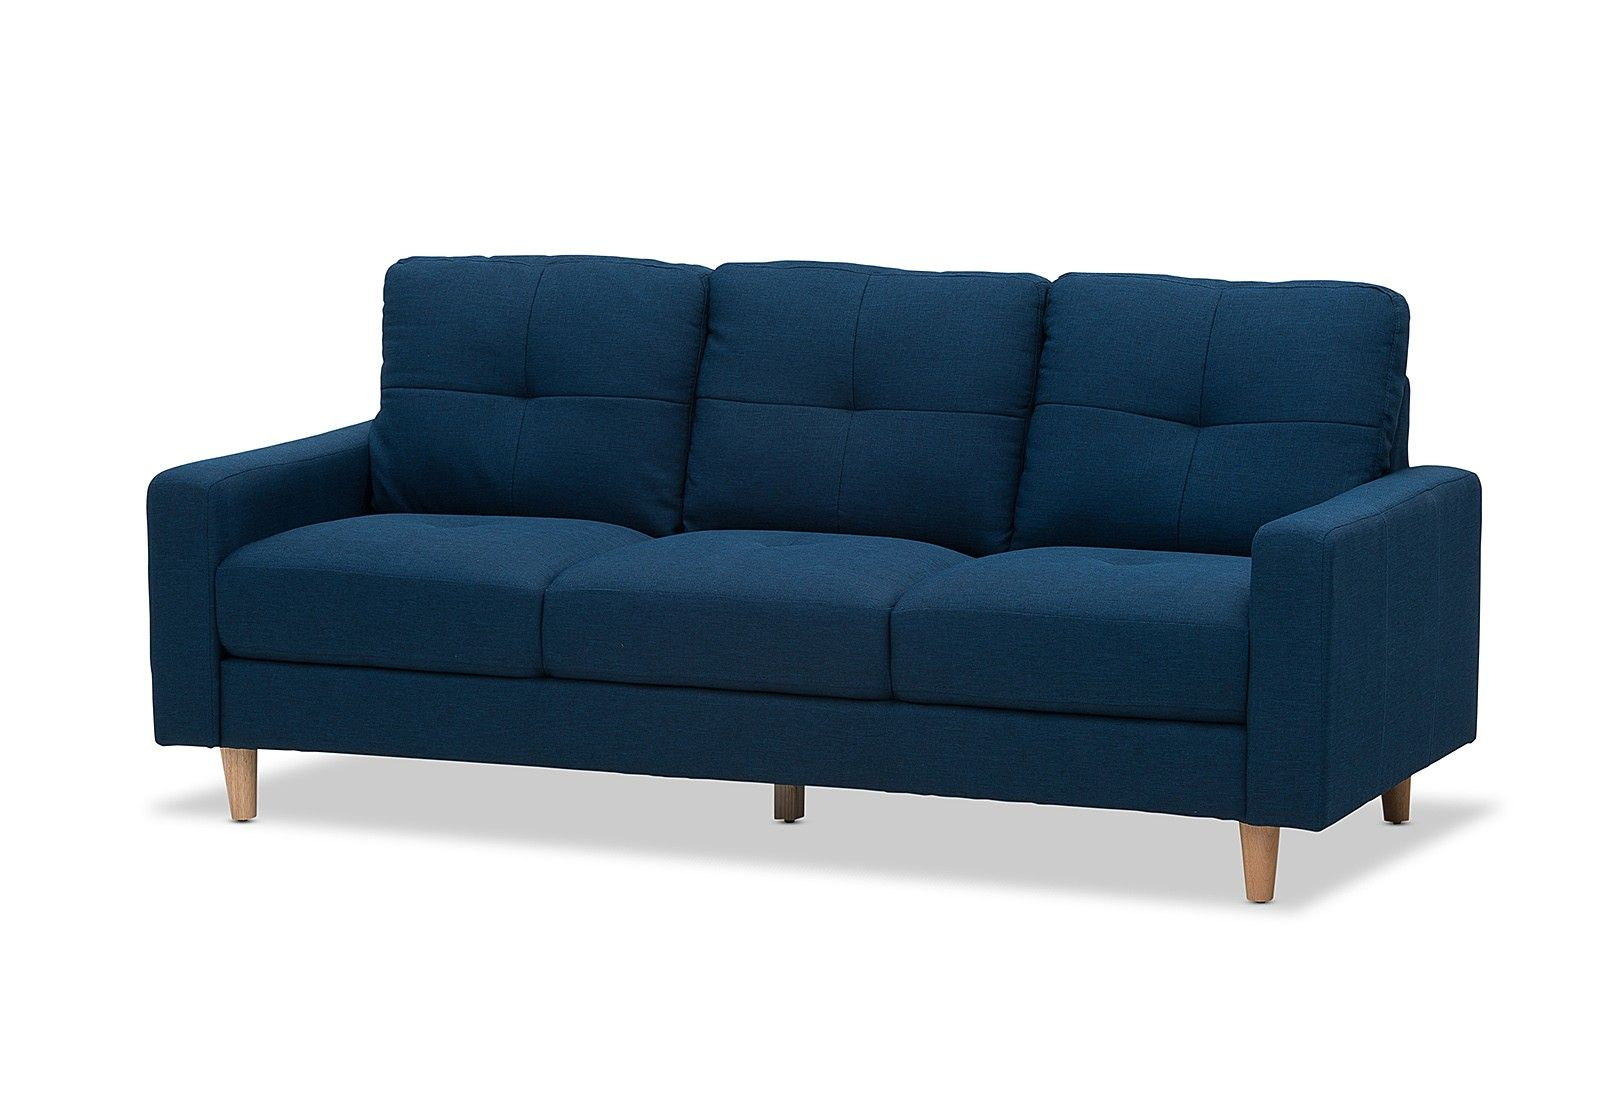 Keller 3 Seater Amart Furniture Furniture Sofa Pair 2 Seater Sofa